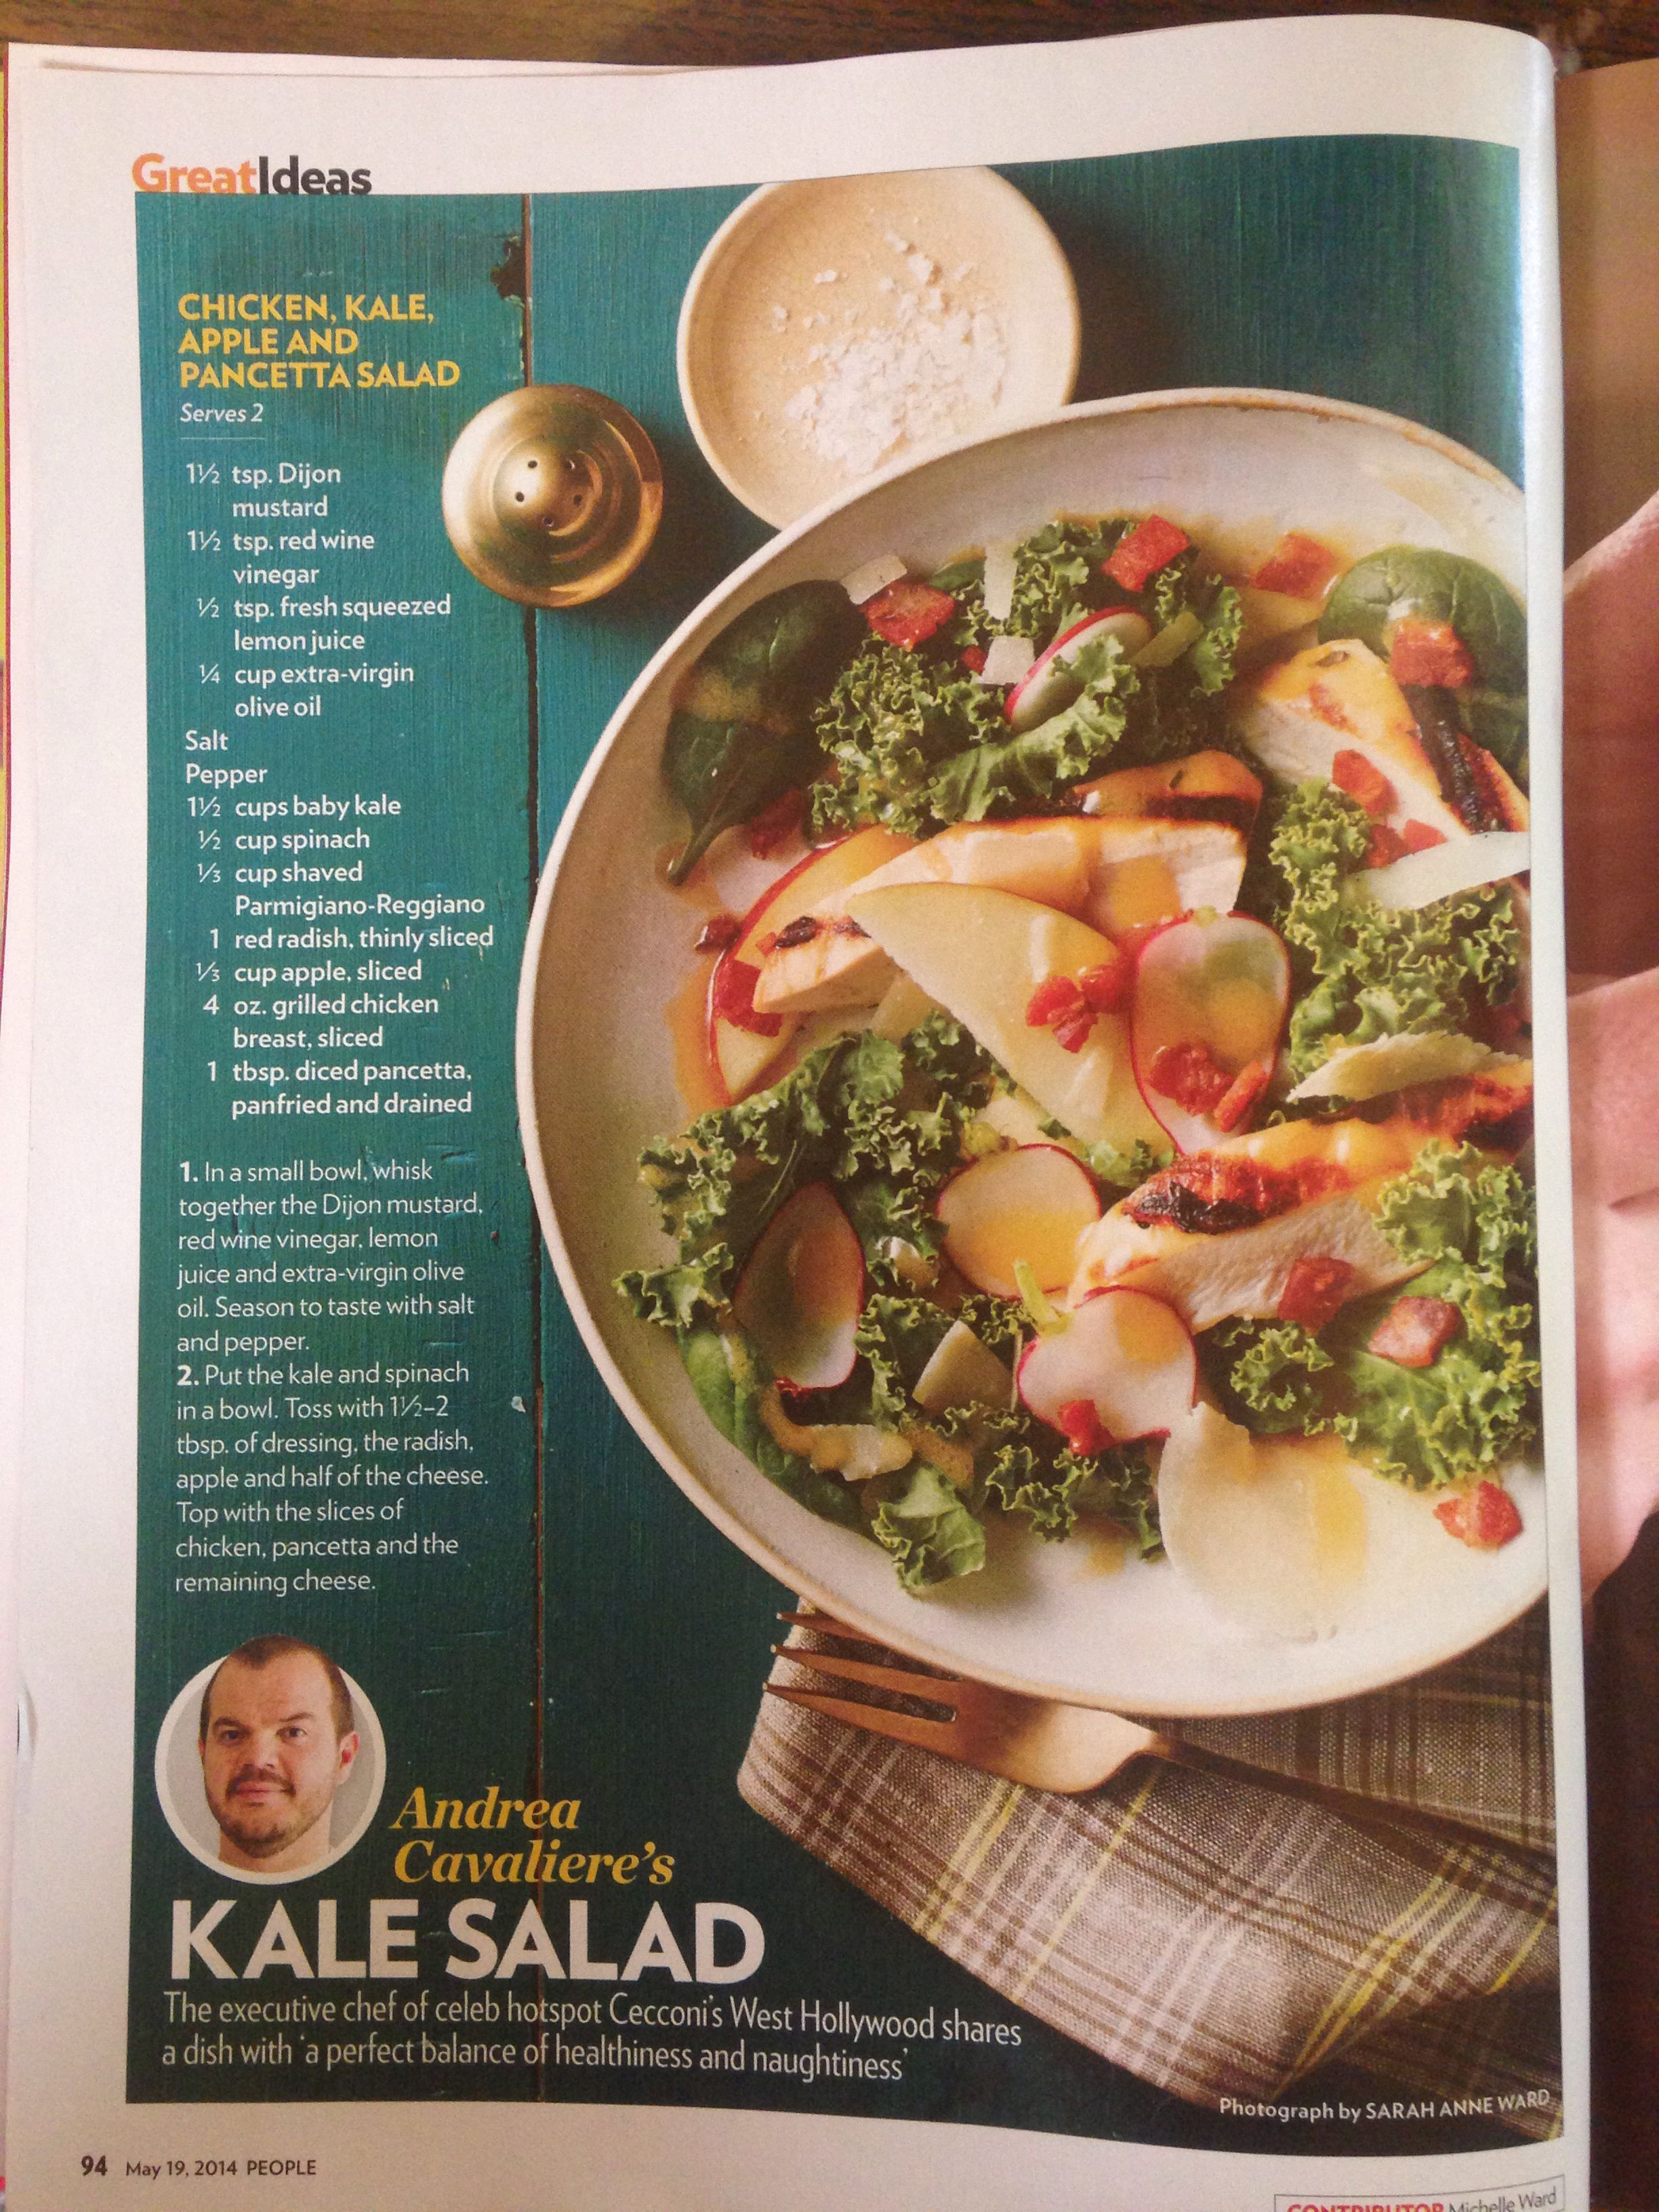 Chicken, kale, apple and pancetta salad | Main dishes | Pinterest